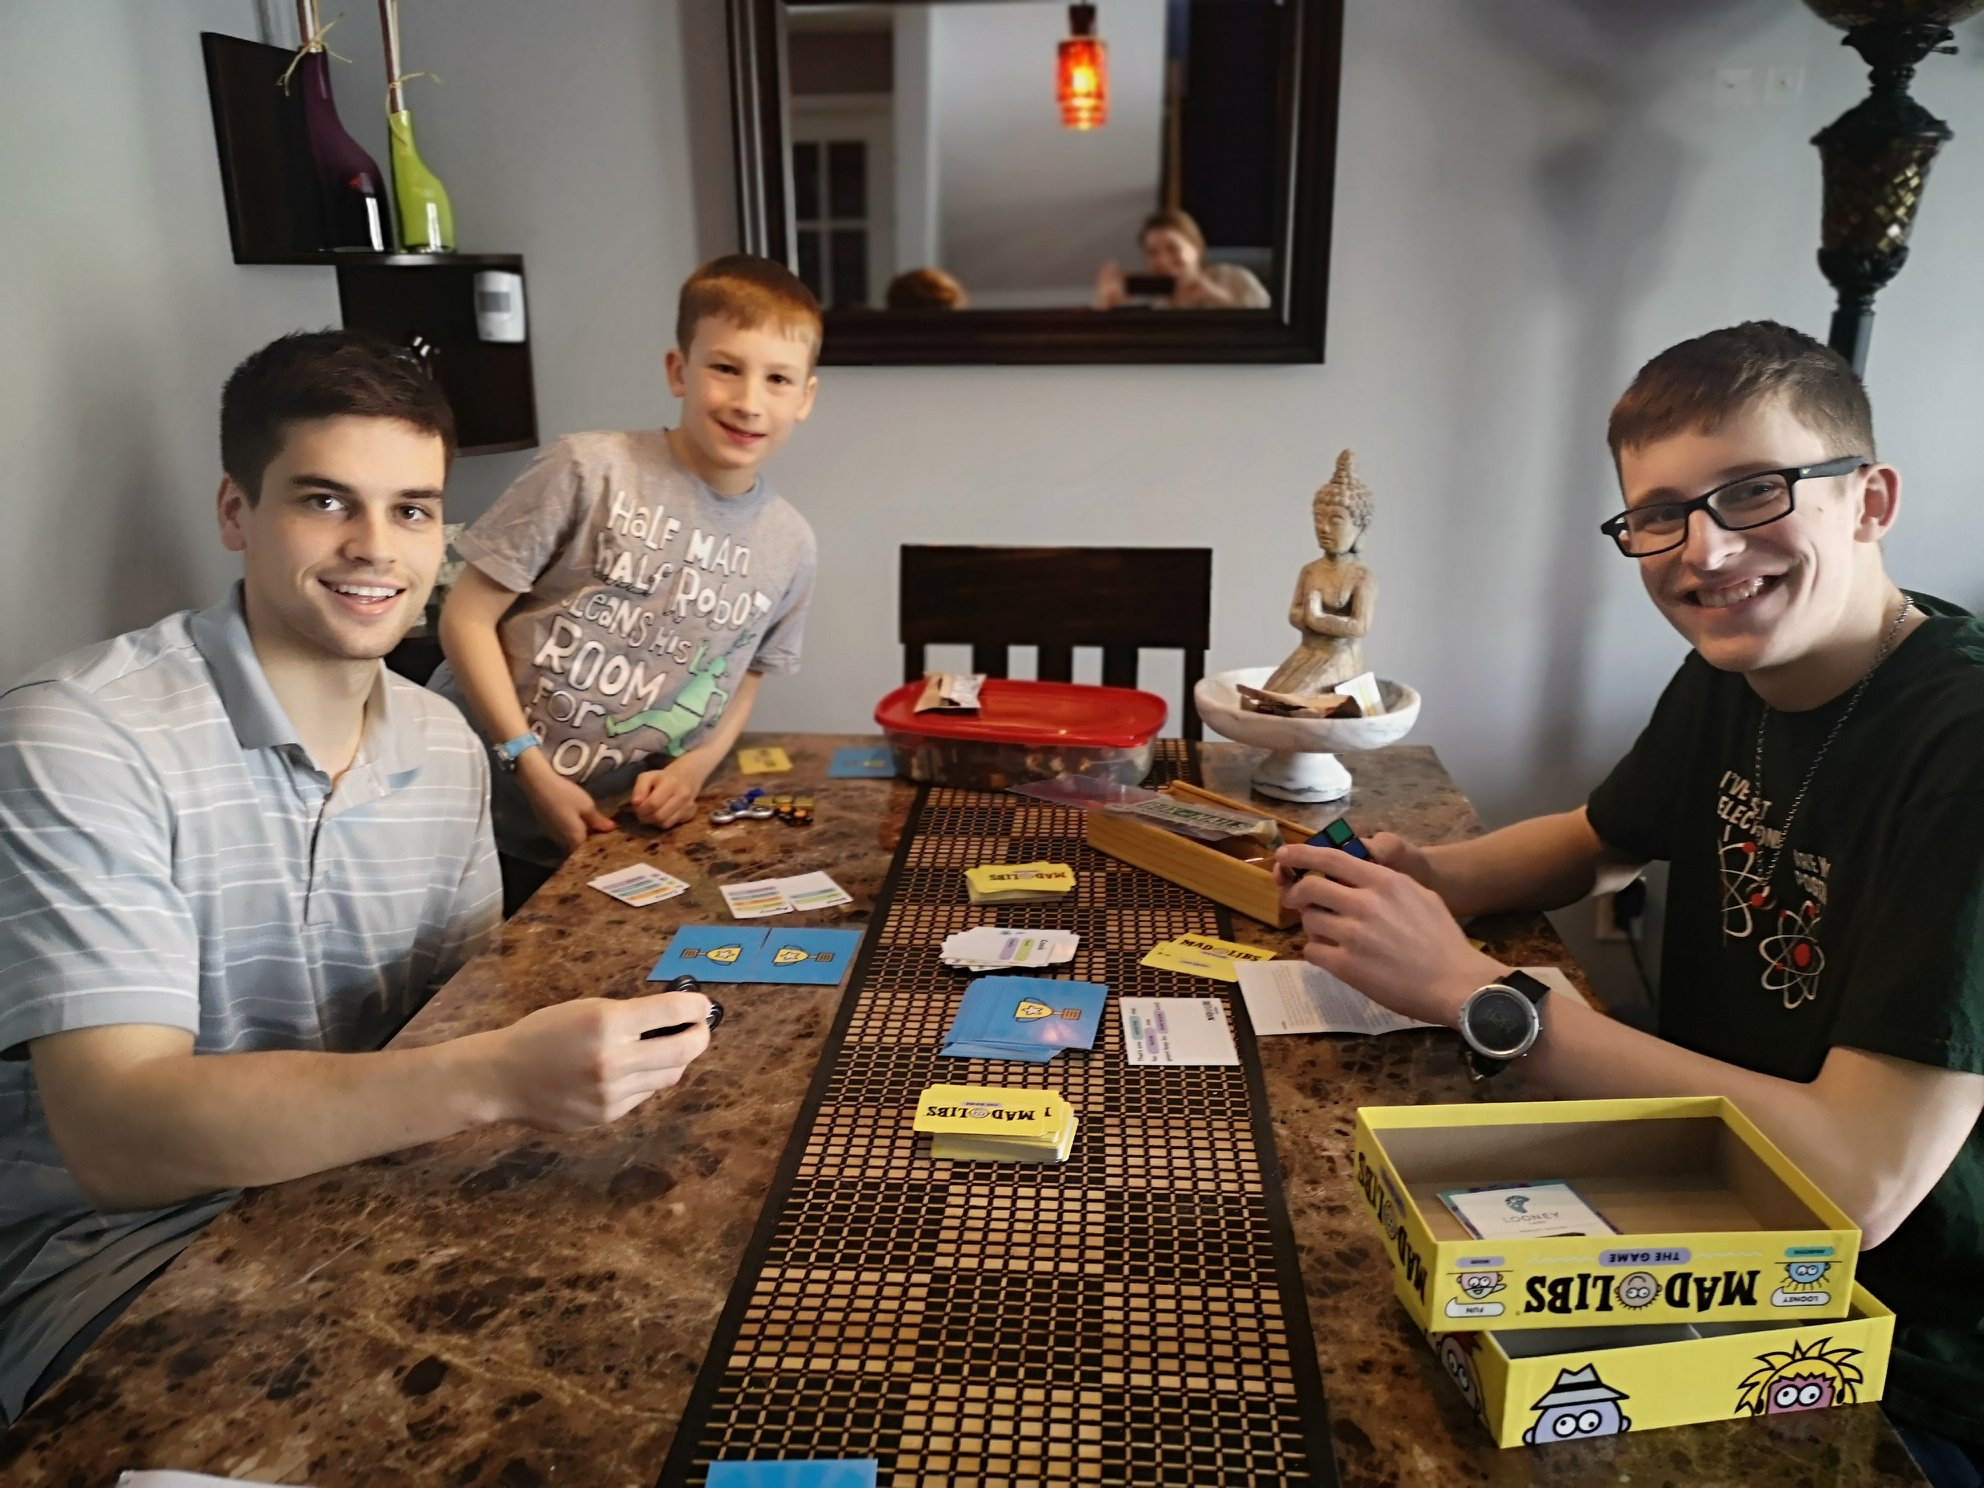 Scott and his two buddies enjoy board games among other activities during their visits. It was a blast hanging out with these incredibly intelligent and hilarious guys.